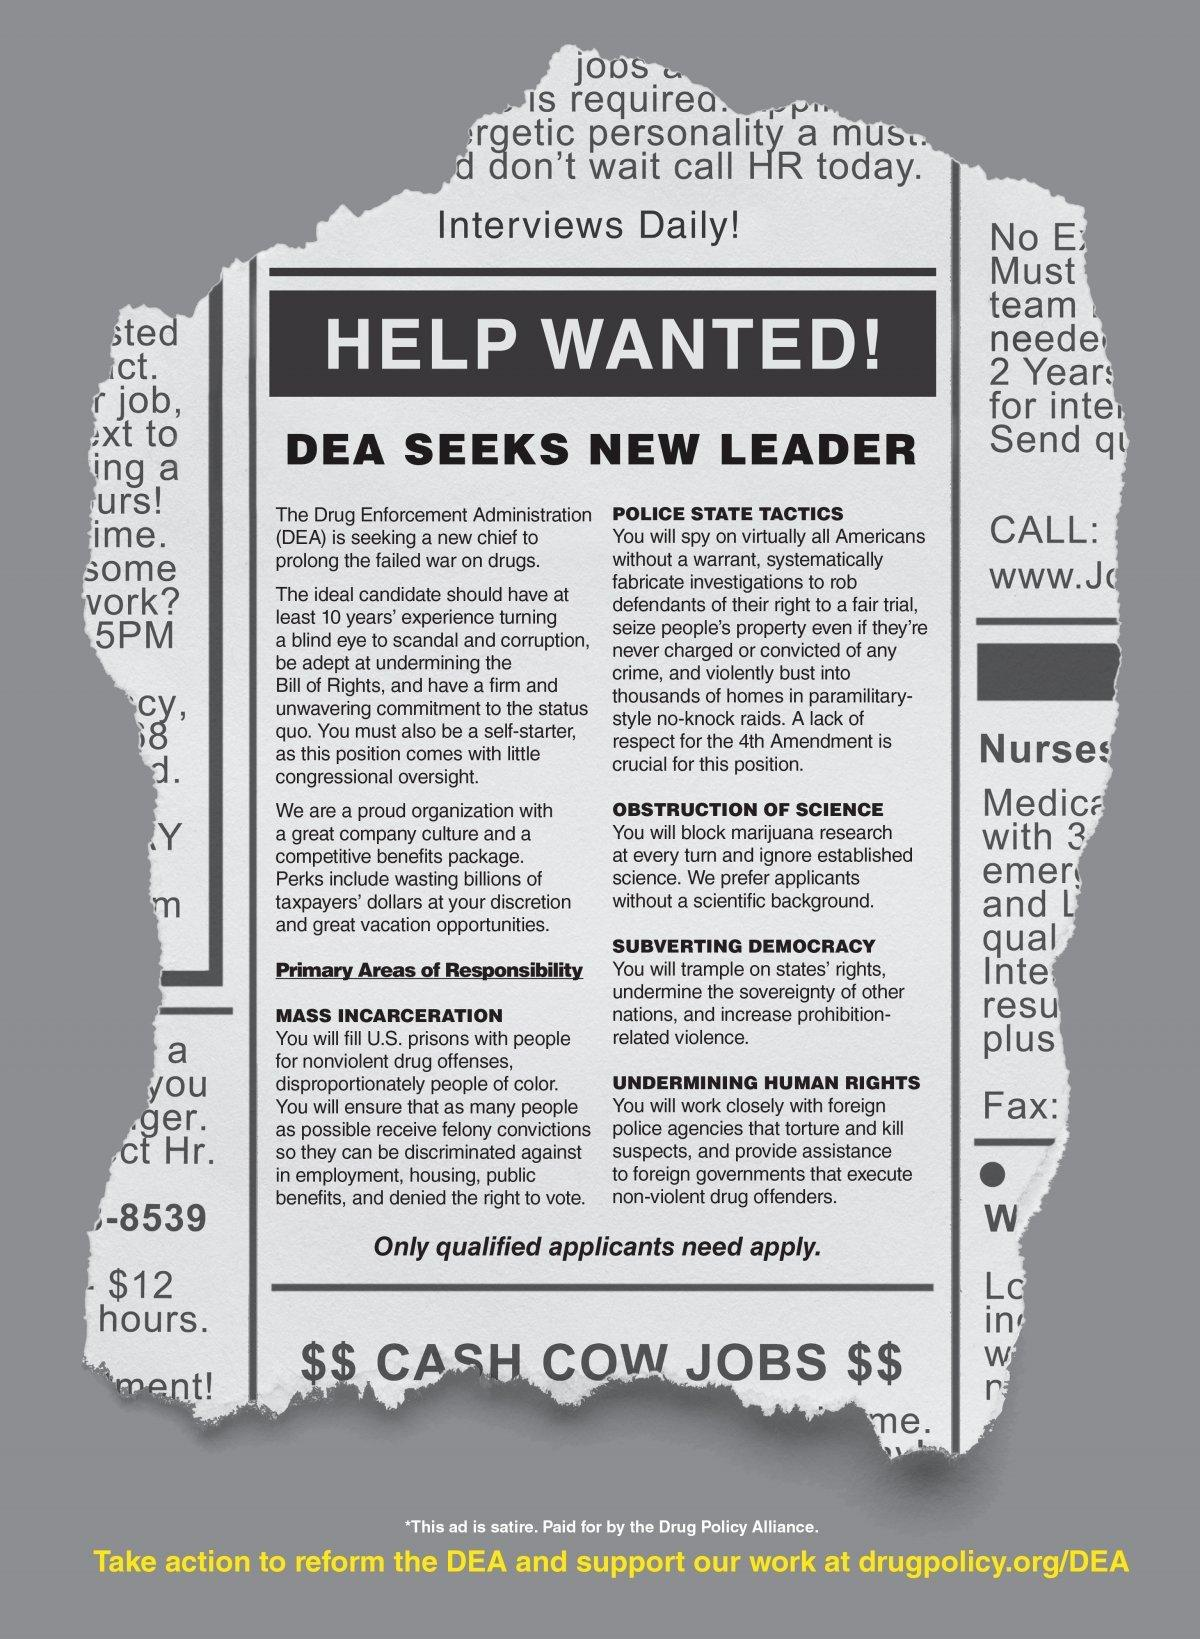 Image of ad for new DEA chiefs primary responsibilities -- including mass incarceration, police state tactics, obstruction of science, subverting democracy and undermining human rights.